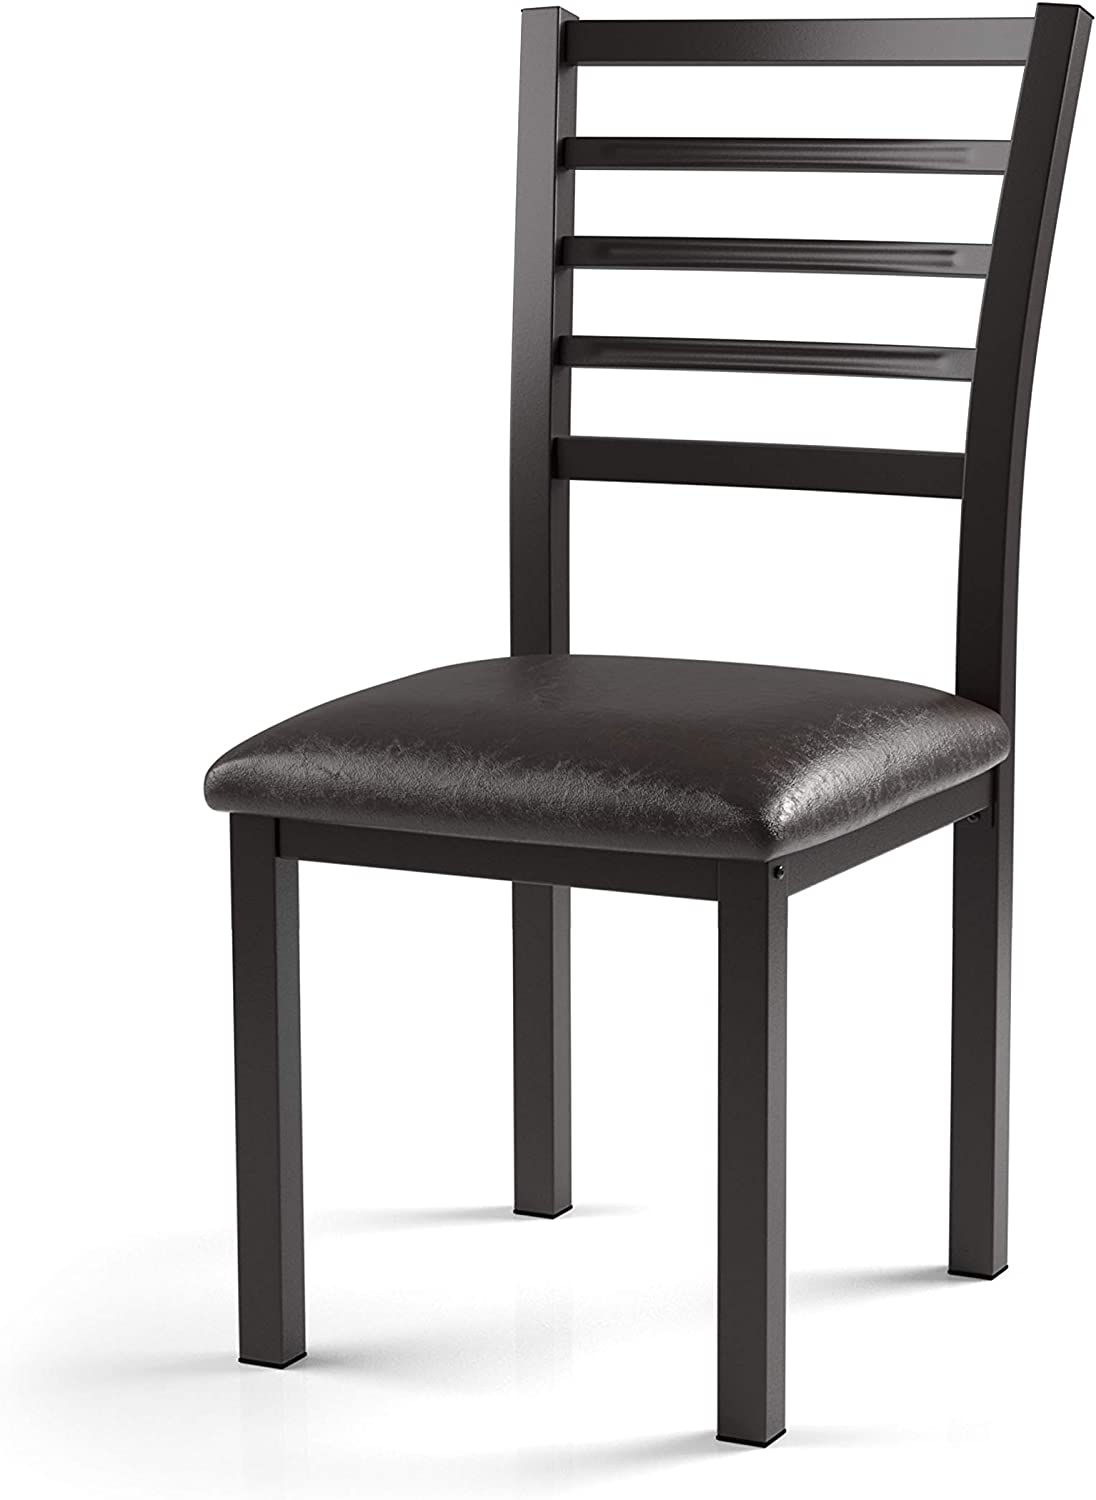 Furniture of America Casella Ladder-Back Dining Chair, Set of 2